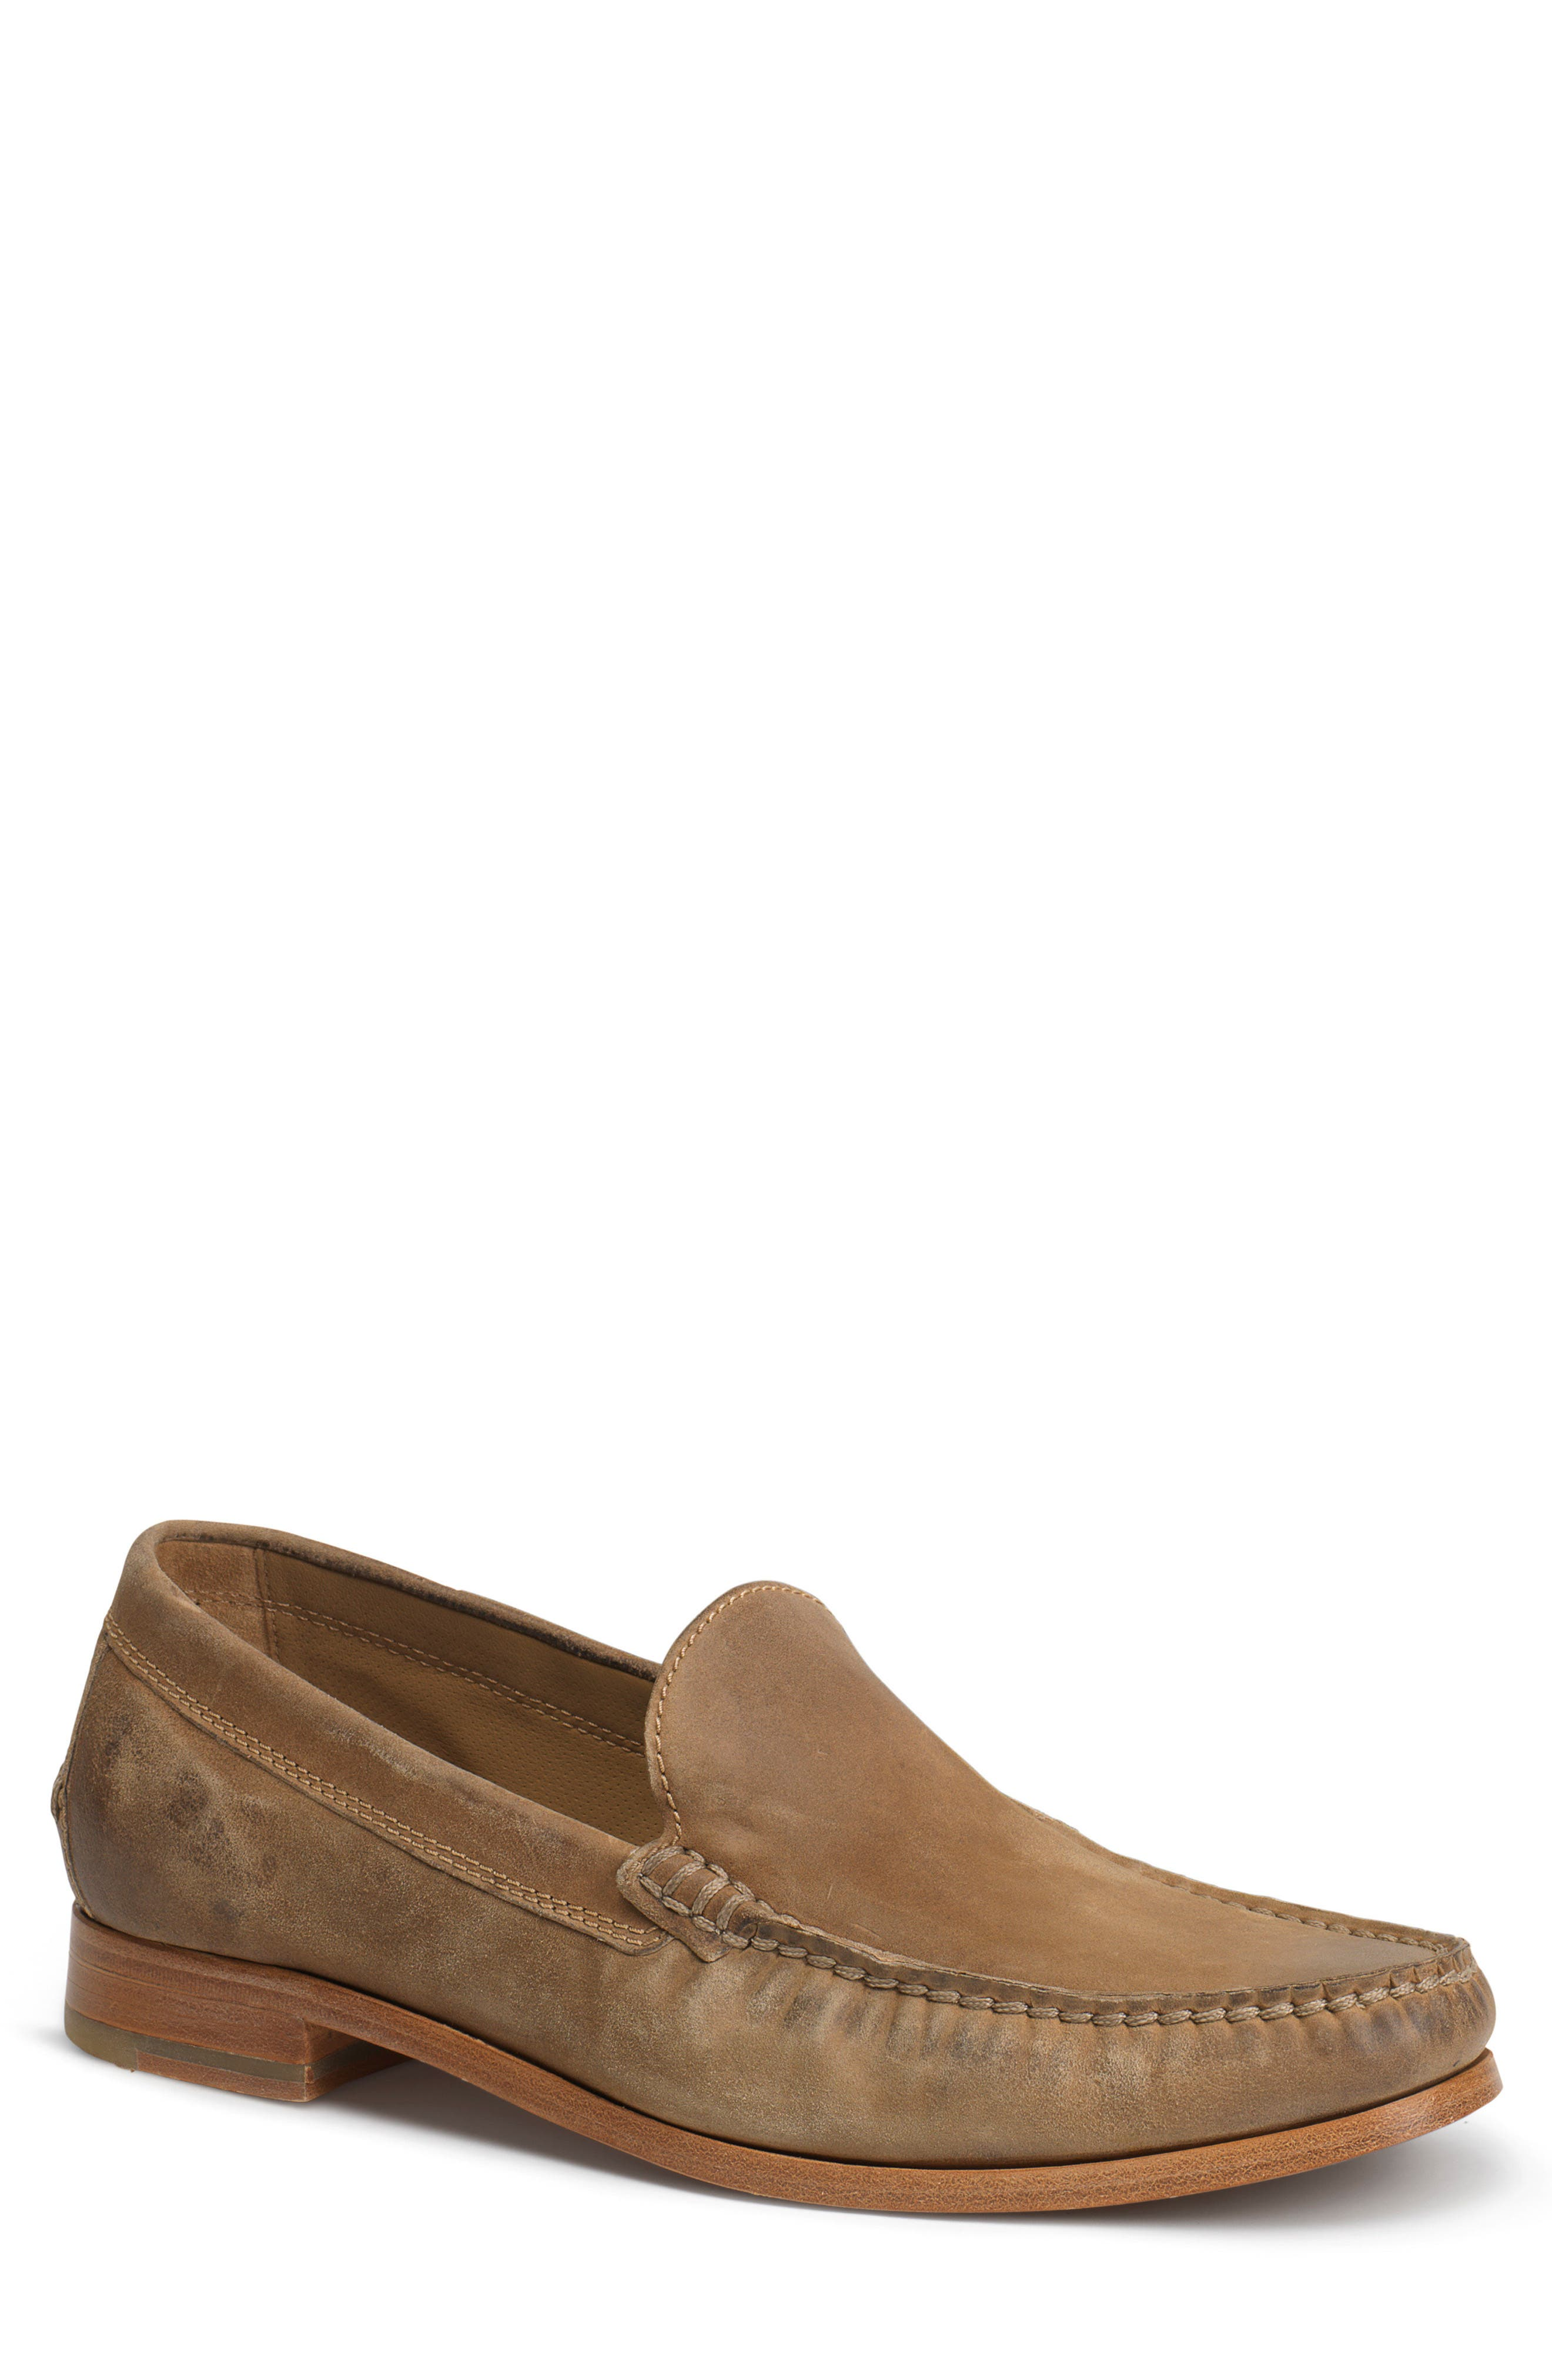 Seymour Loafer,                         Main,                         color,